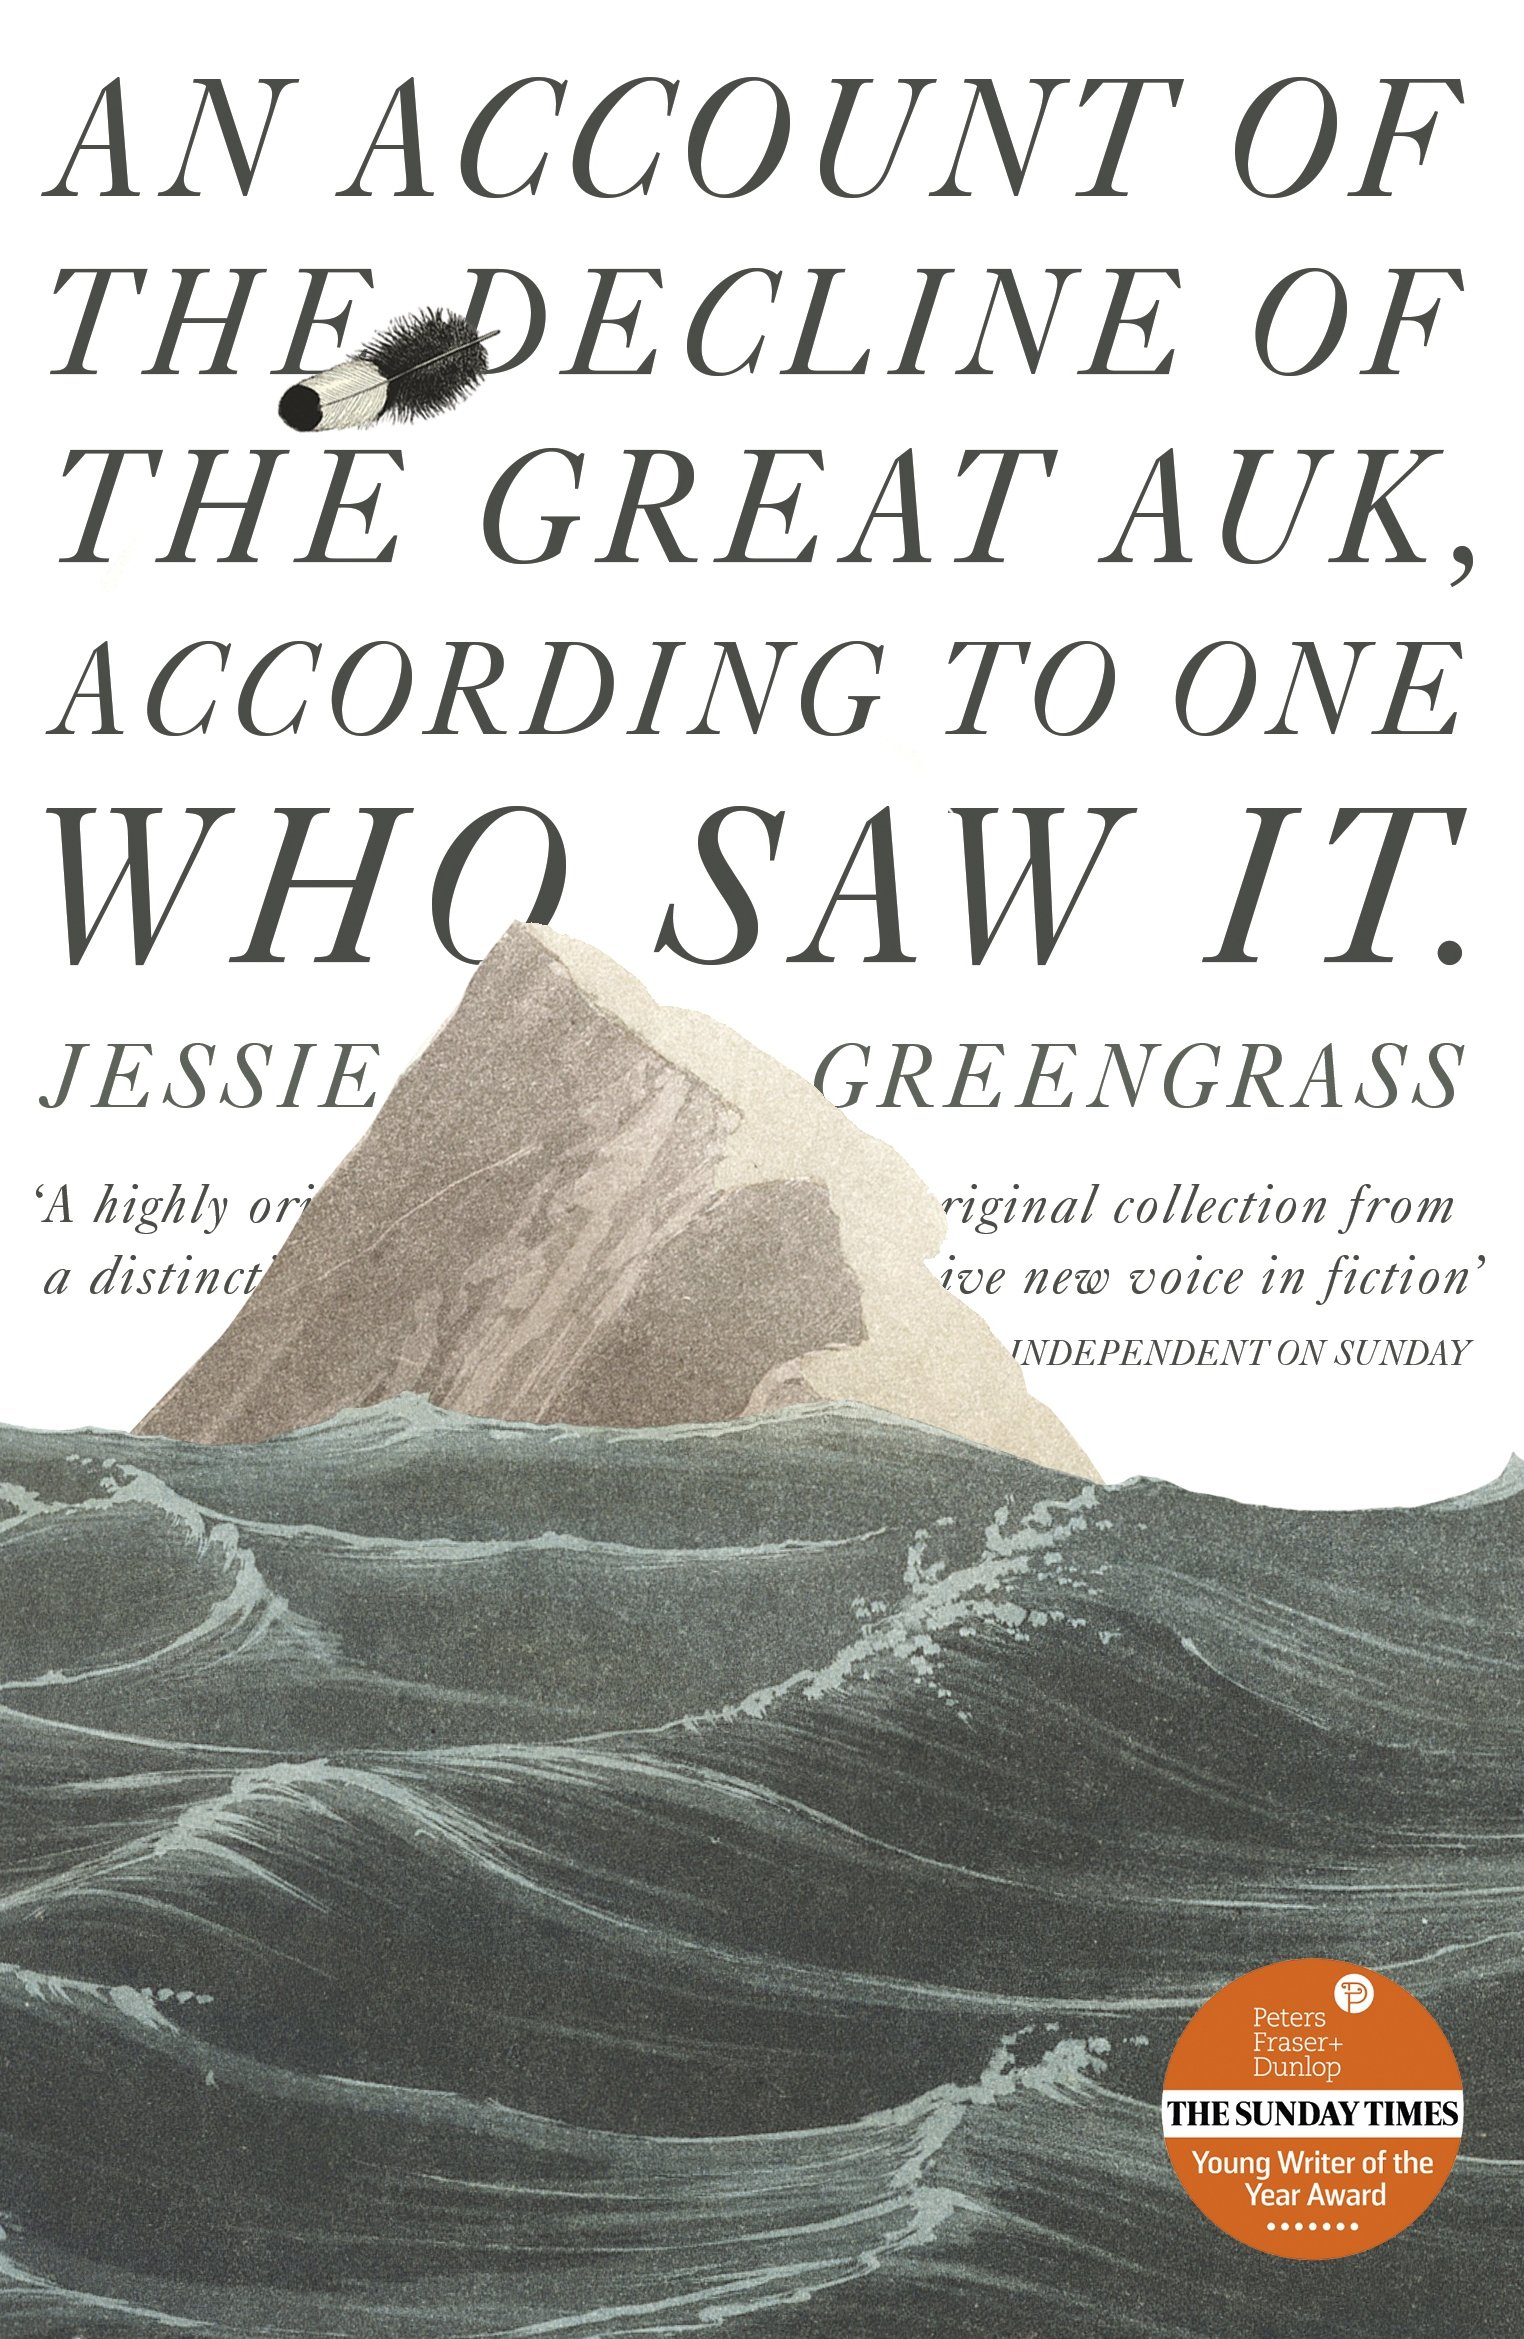 An Account of the Decline of the Great Auk, According to One Who Saw It